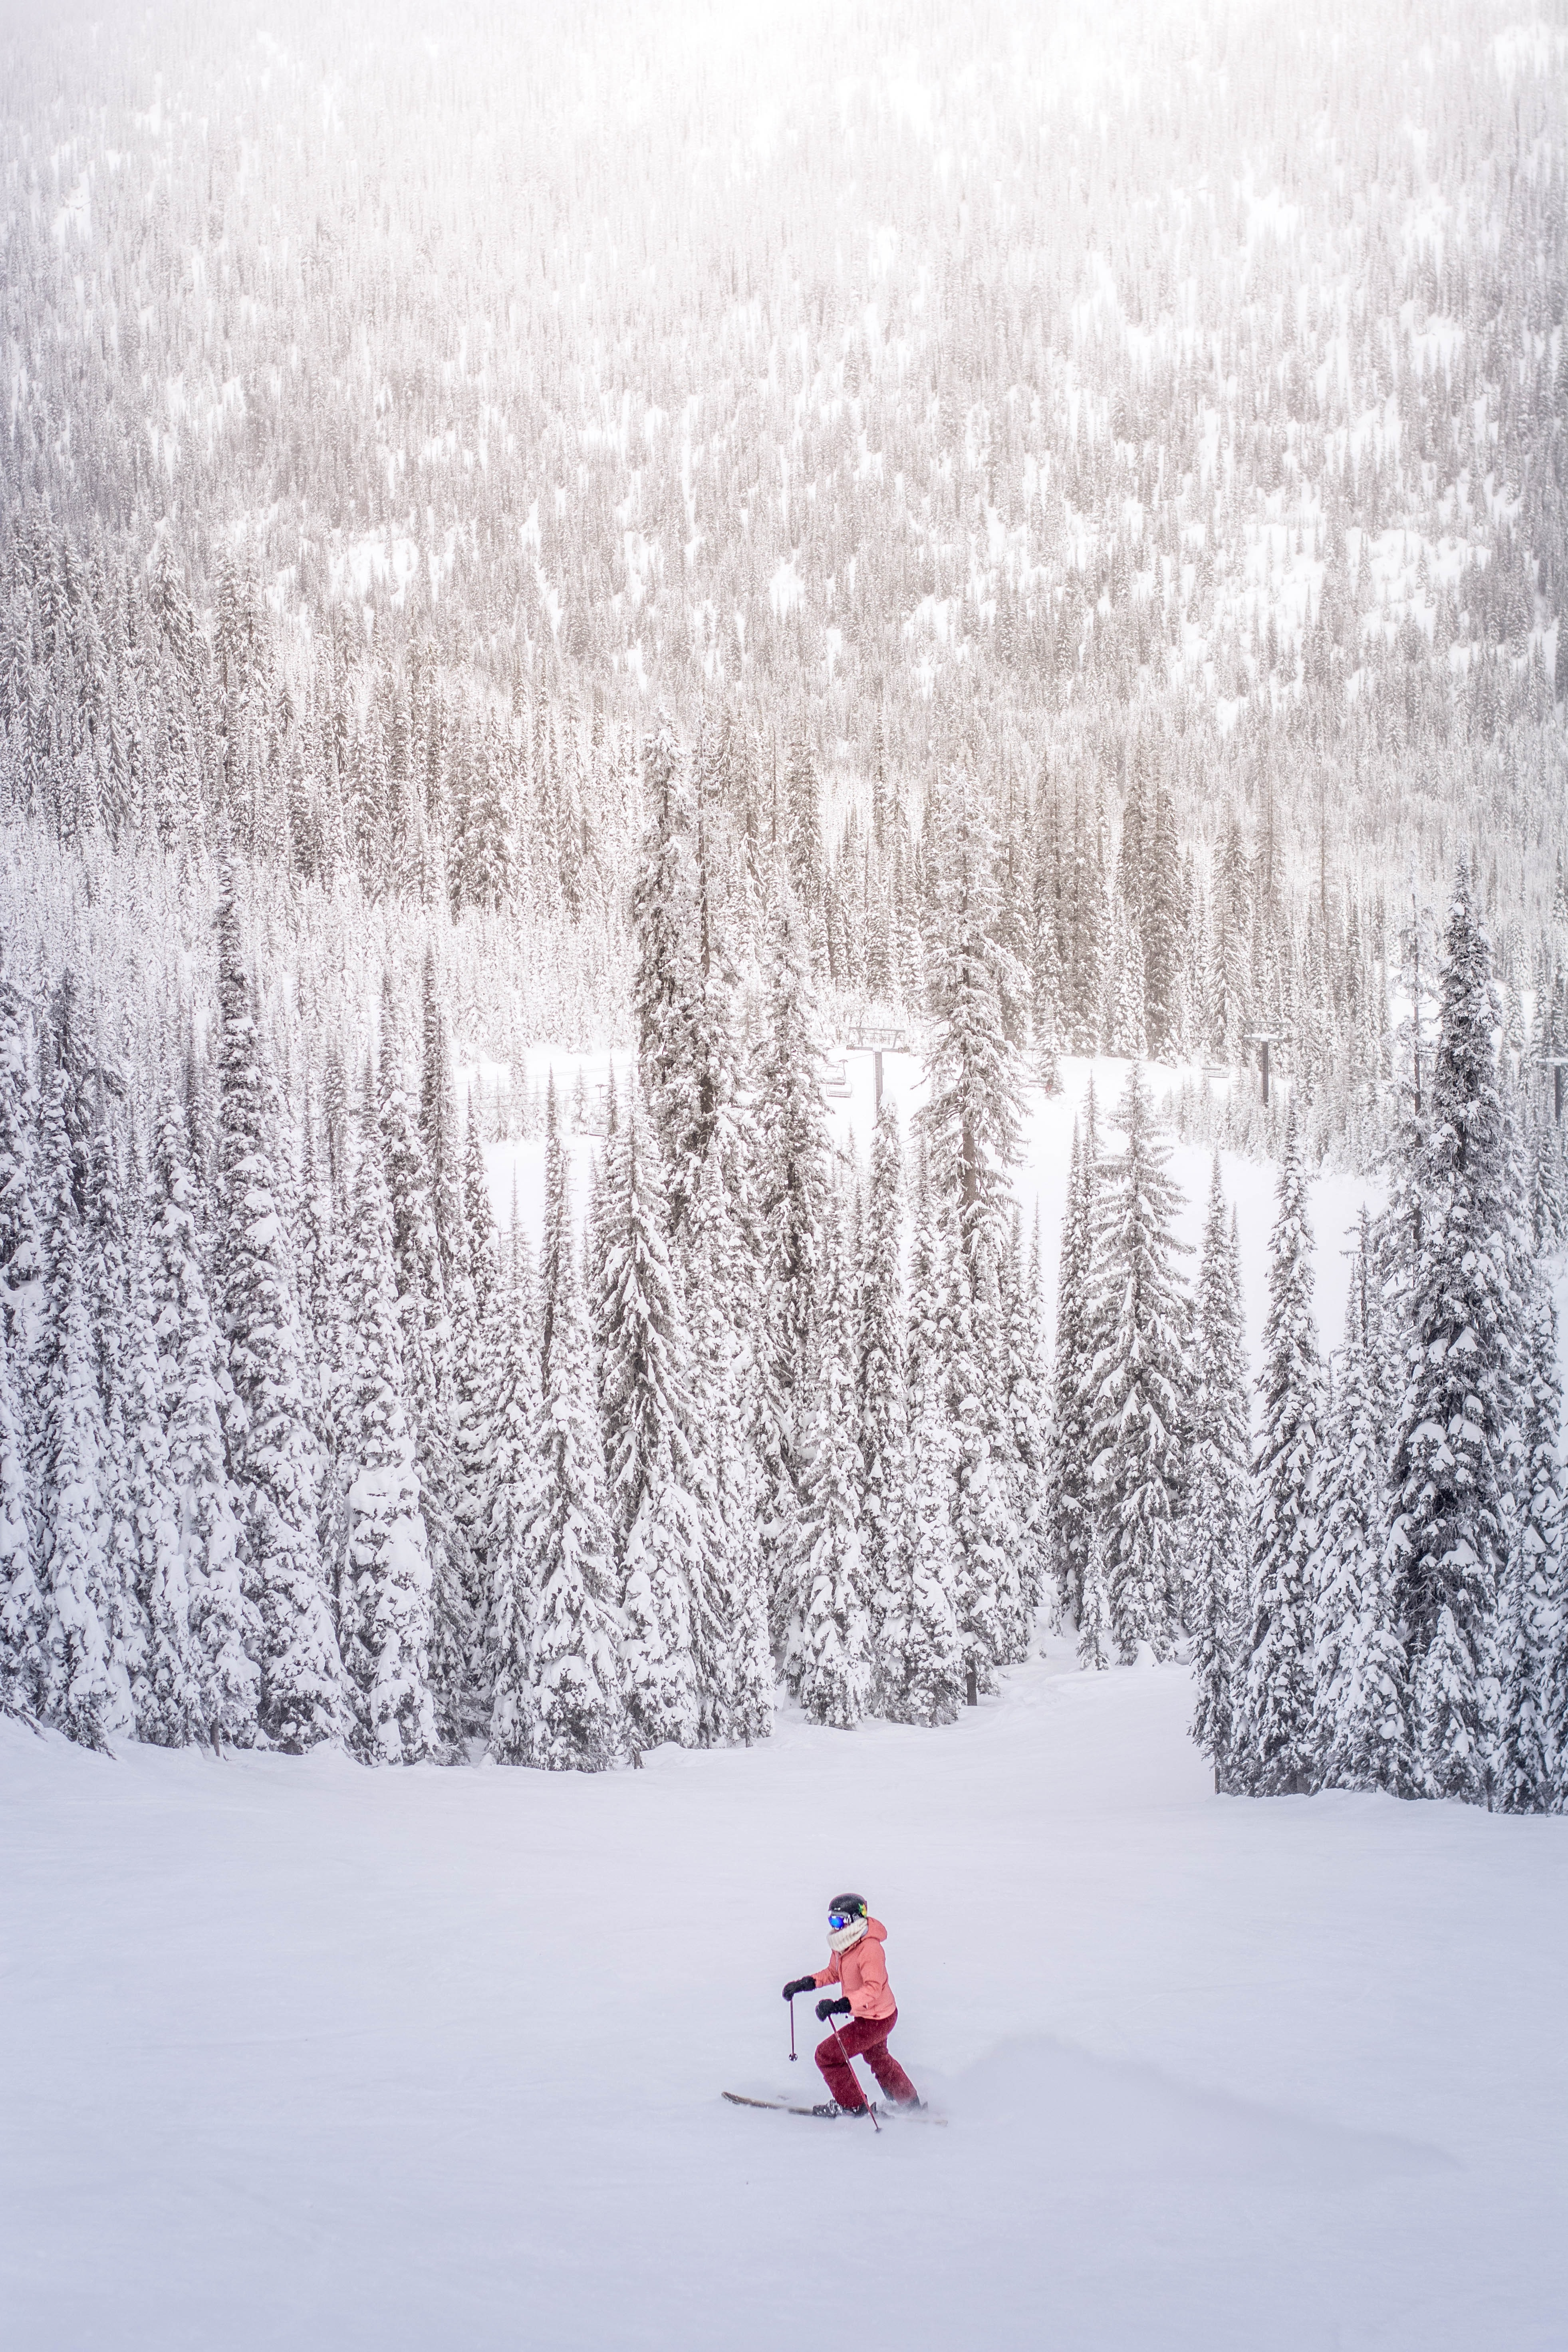 A person walking with skis in the open on a ski hill near heavily treed winter forests